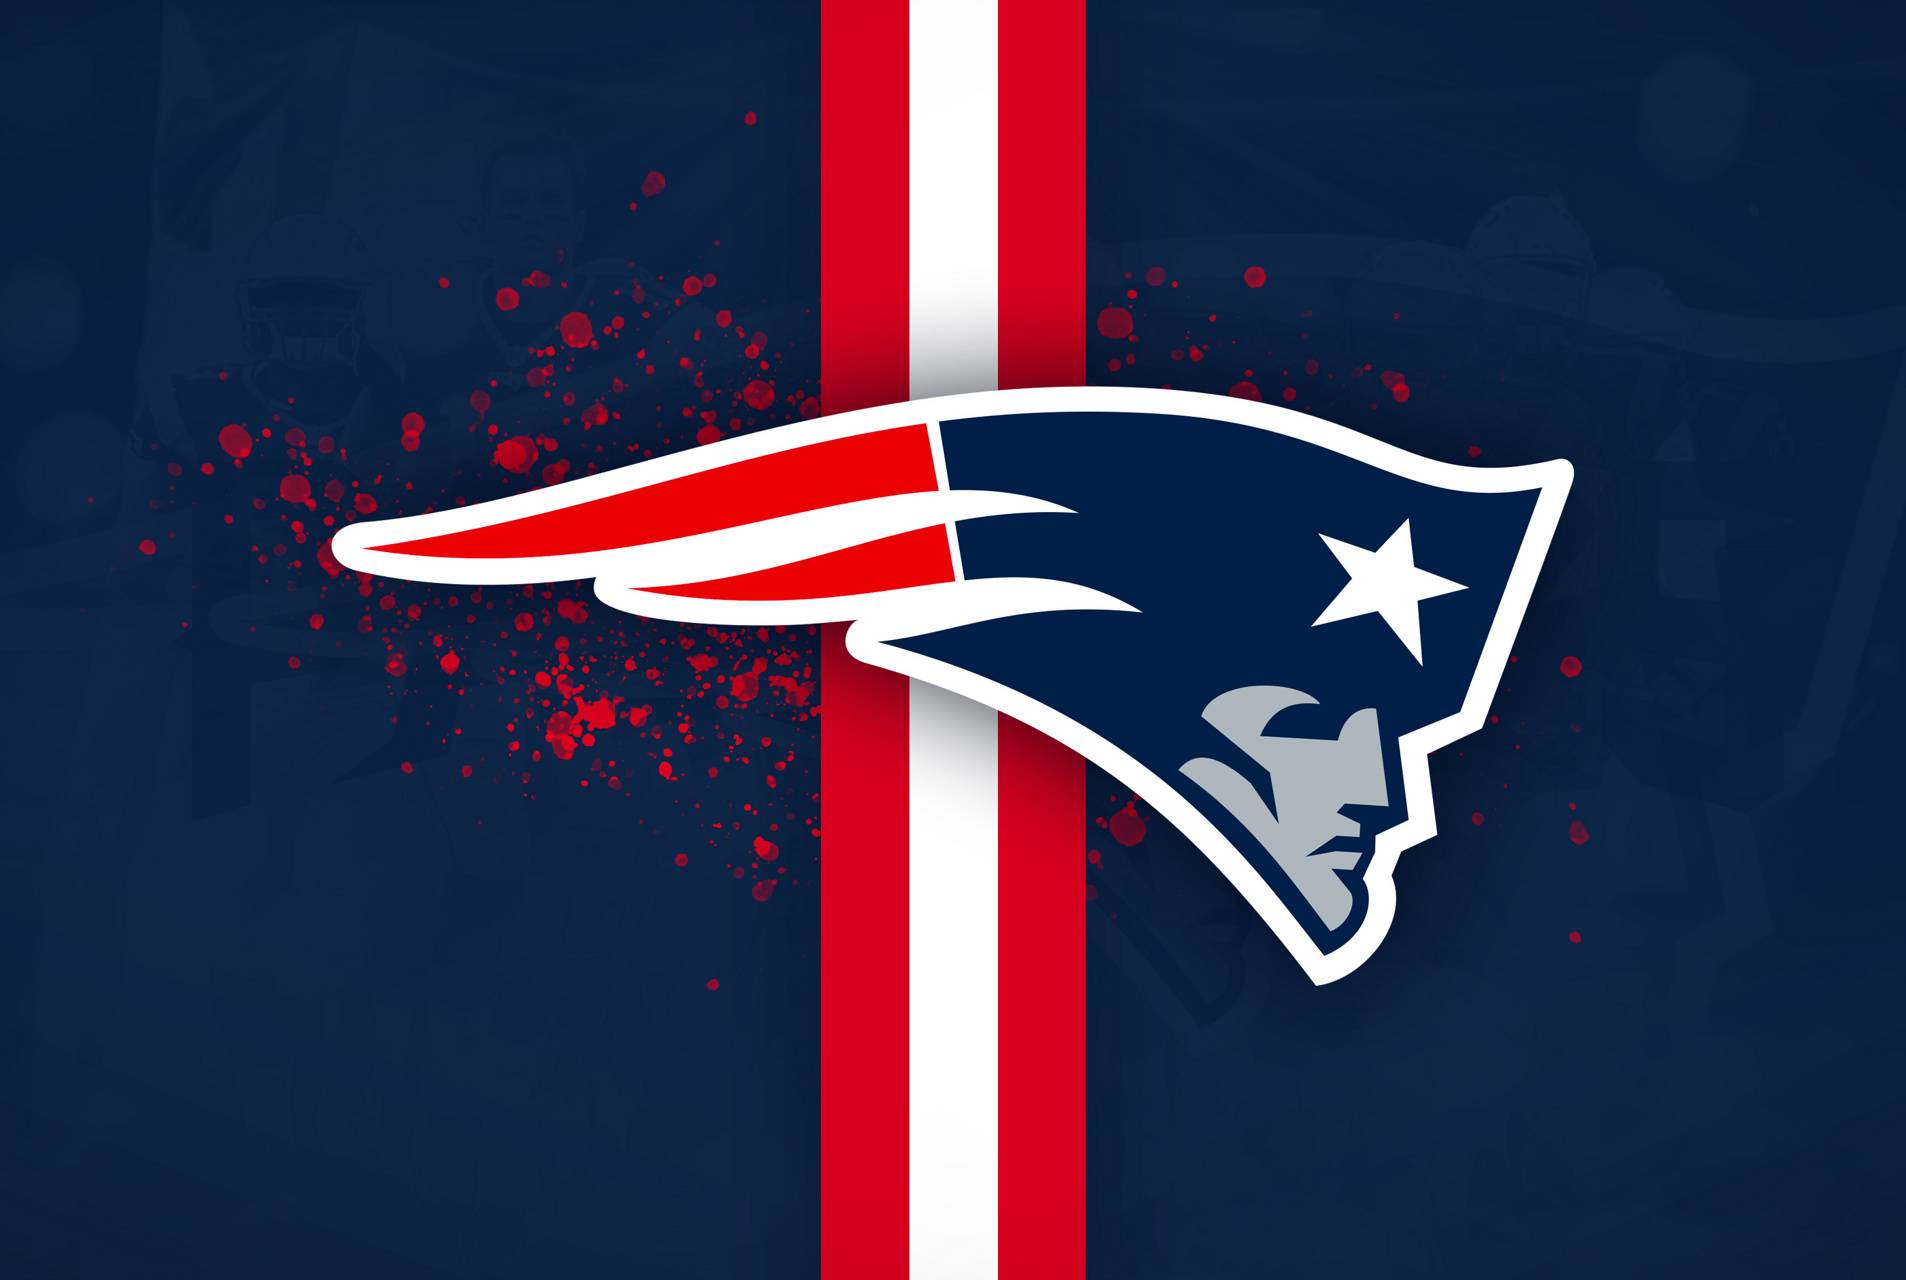 Patriots Wallpaper Wallpaper By G7graphics 75 Free On Zedge